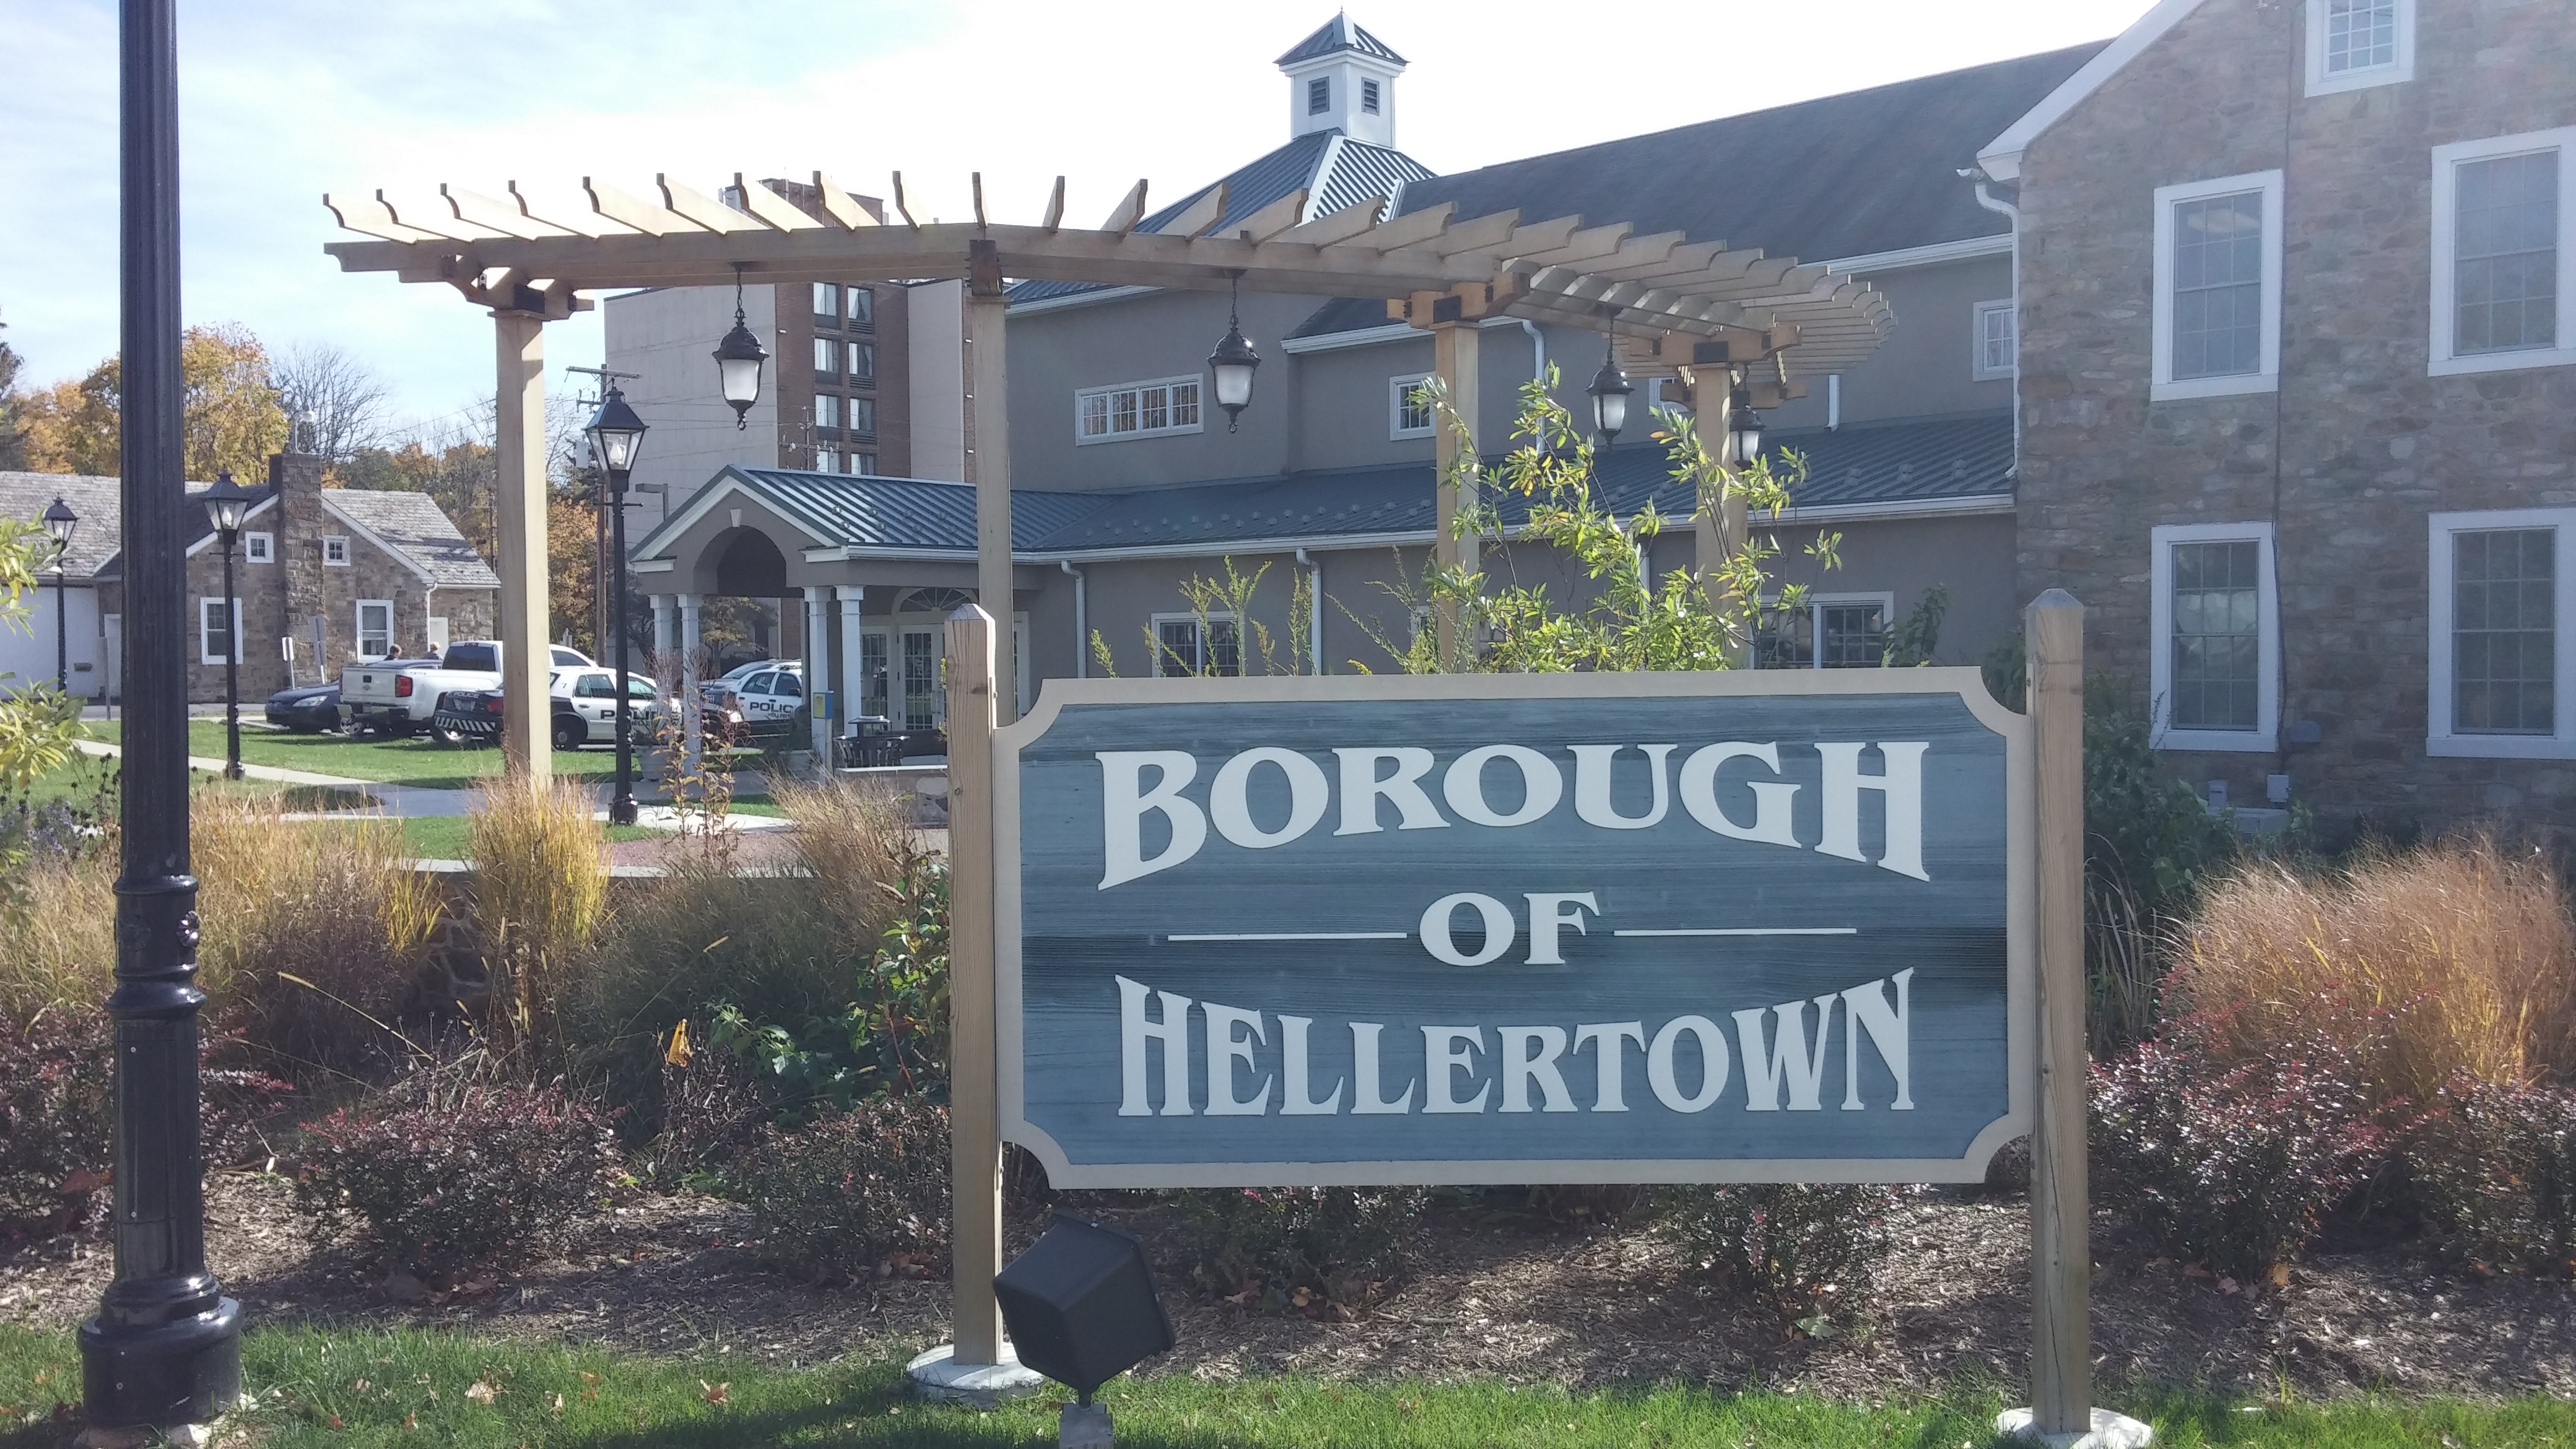 hellertown online dating Man scammed by person he met on farmers only dating  the 23-year-old man from macungie was using the online dating site farmersonly  hellertown's main.